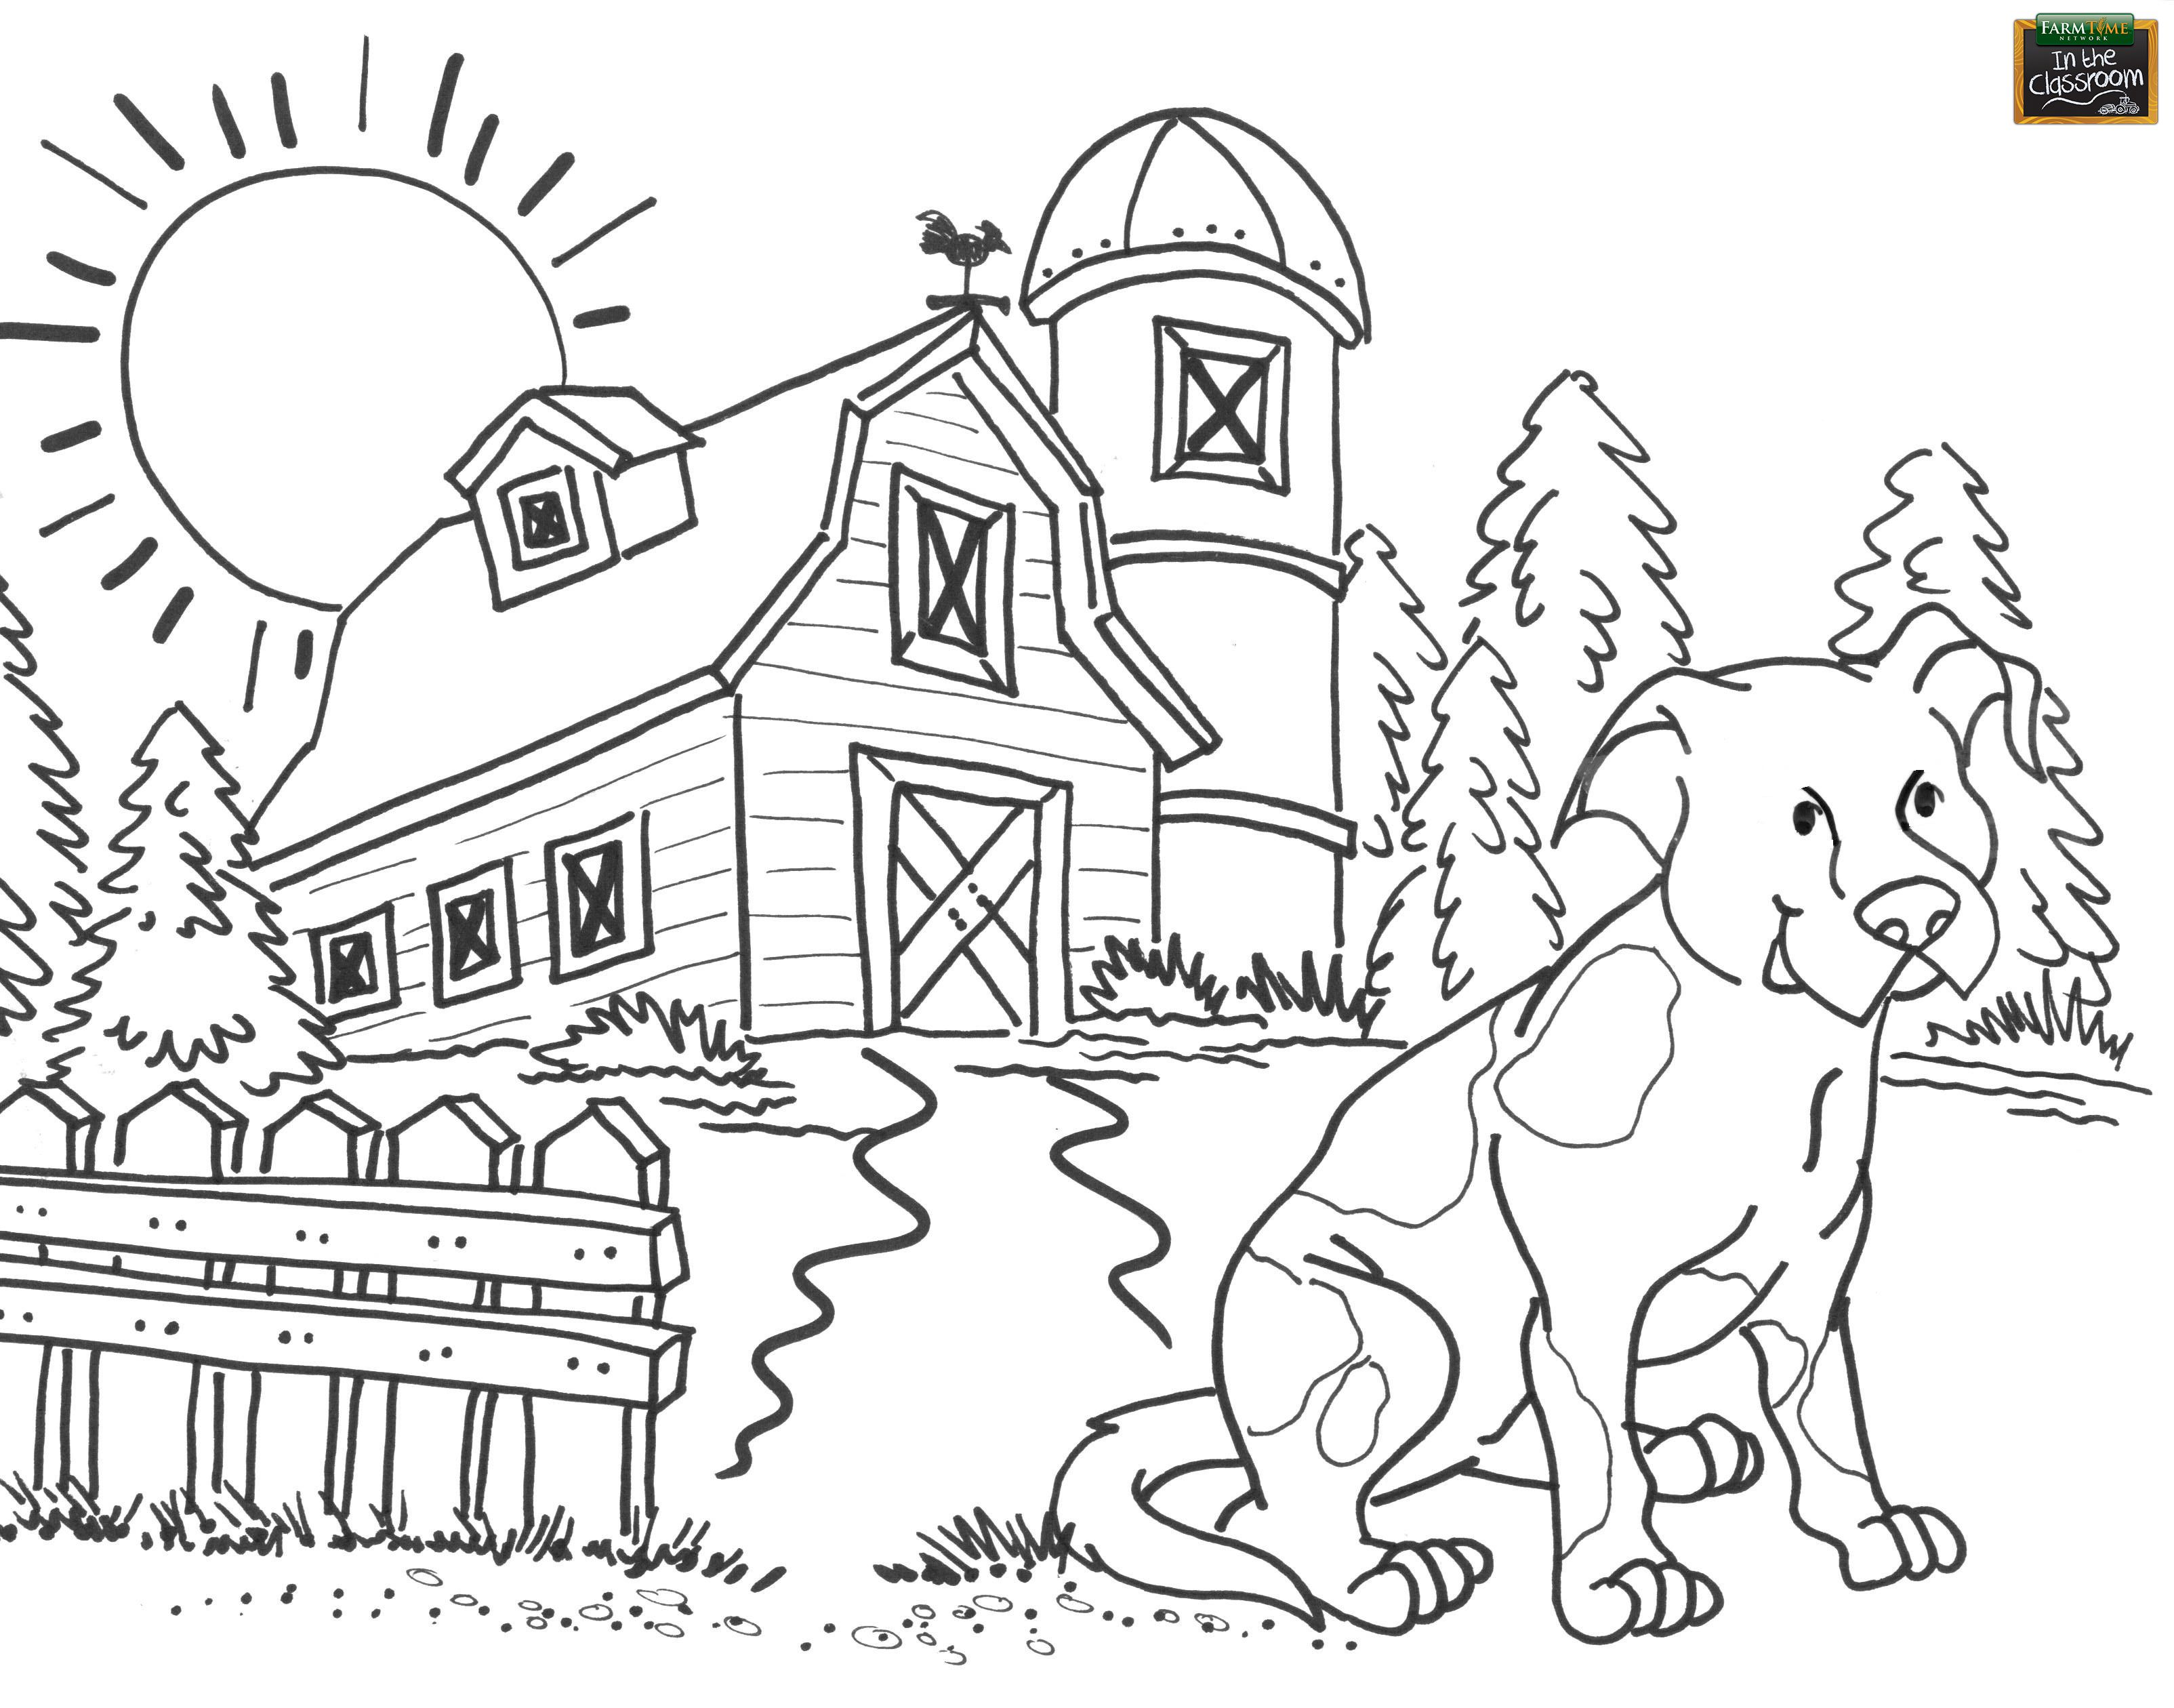 58 best farm animals coloring pages images on Pinterest